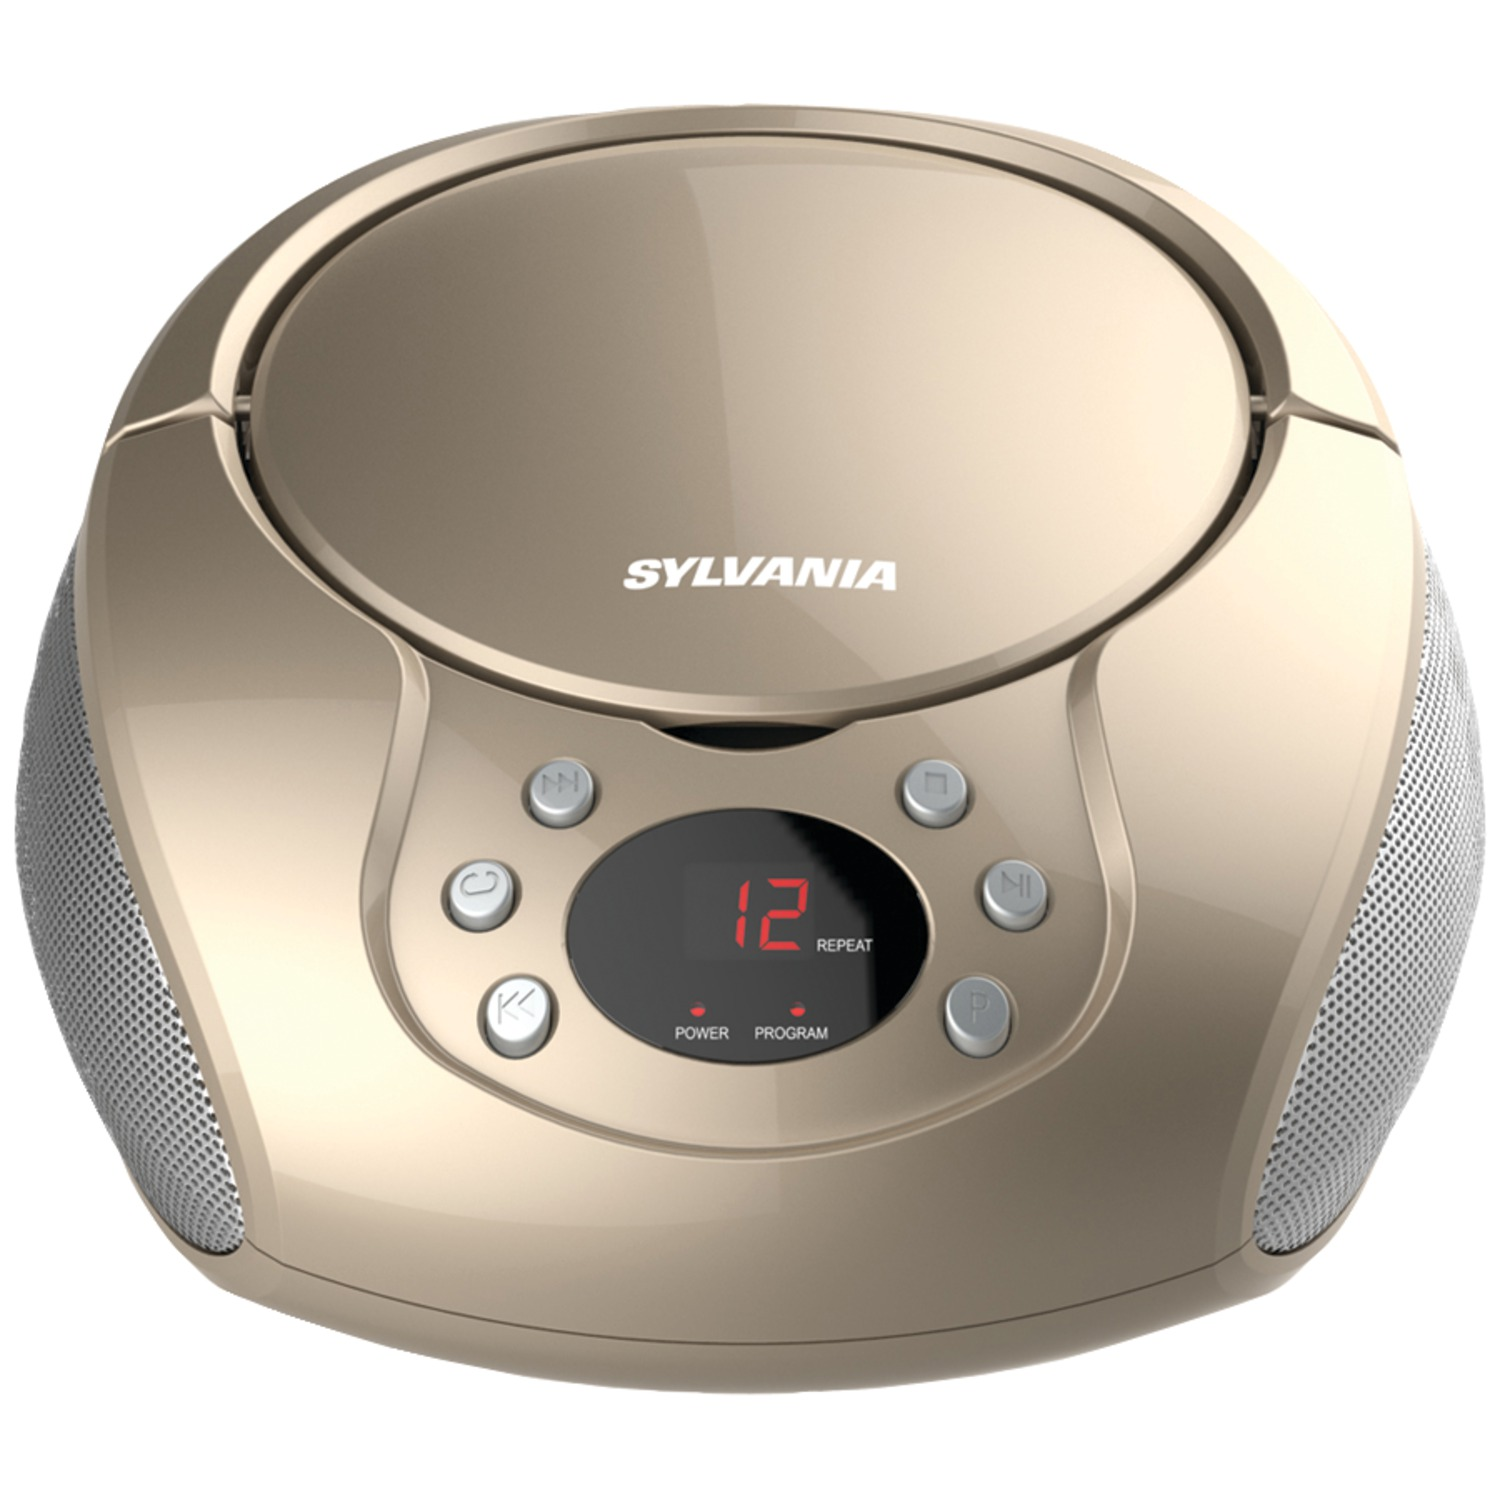 sylvania srcd261 b champagne portable cd player with am fm radio champagne. Black Bedroom Furniture Sets. Home Design Ideas